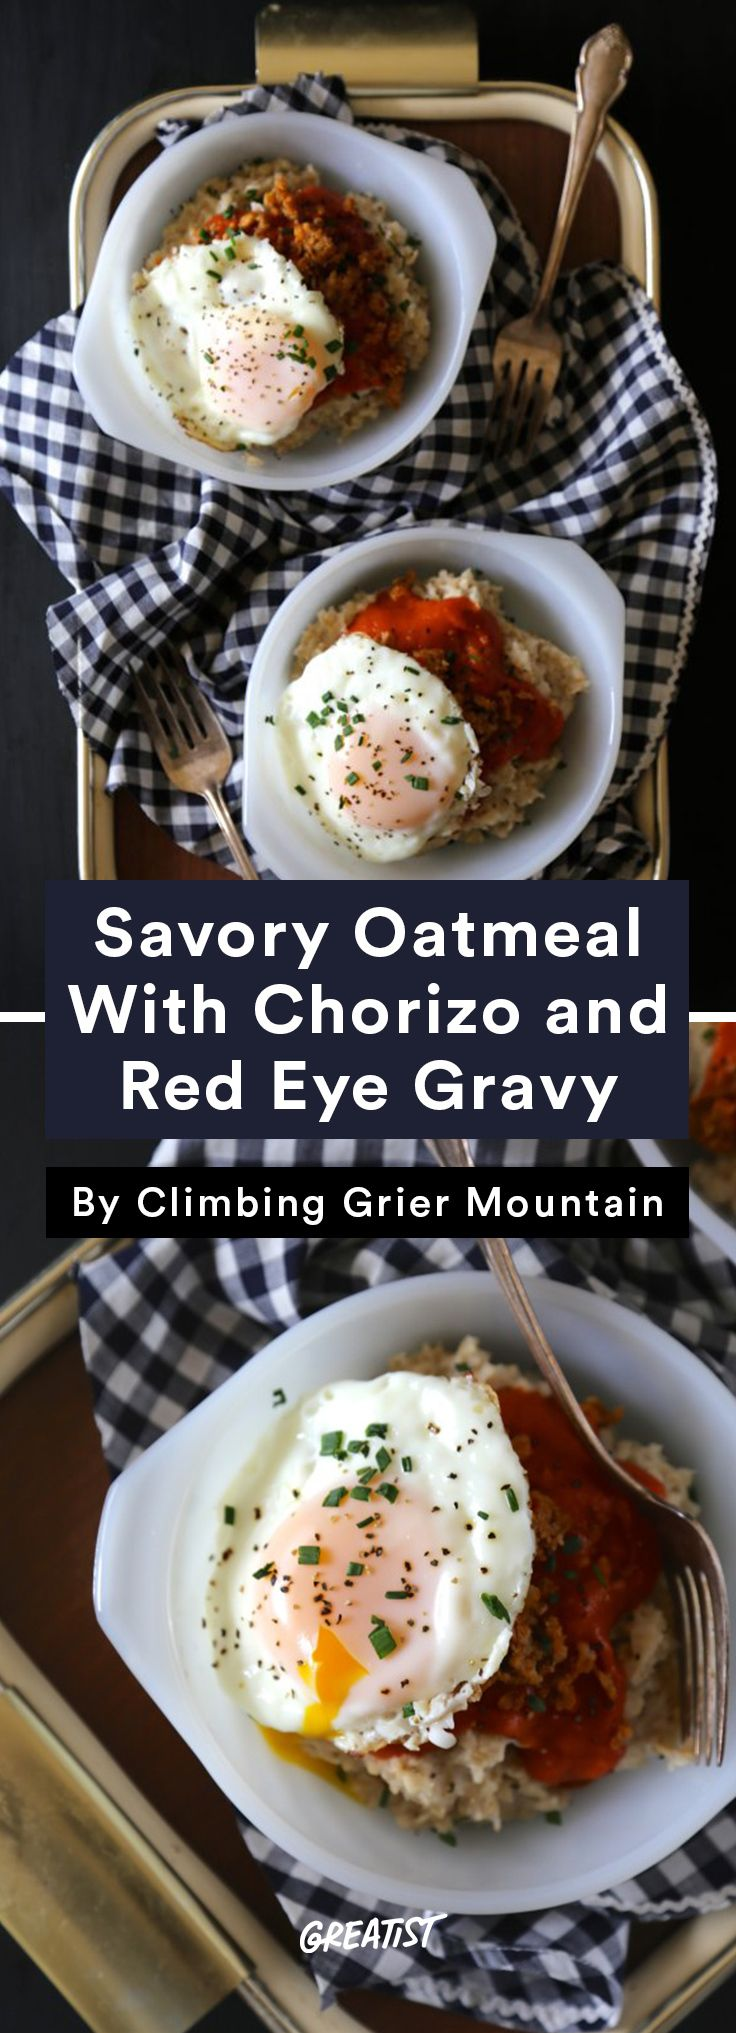 3. Savory Oatmeal With Chorizo and Red Eye Gravy #easy #coffee #recipes…